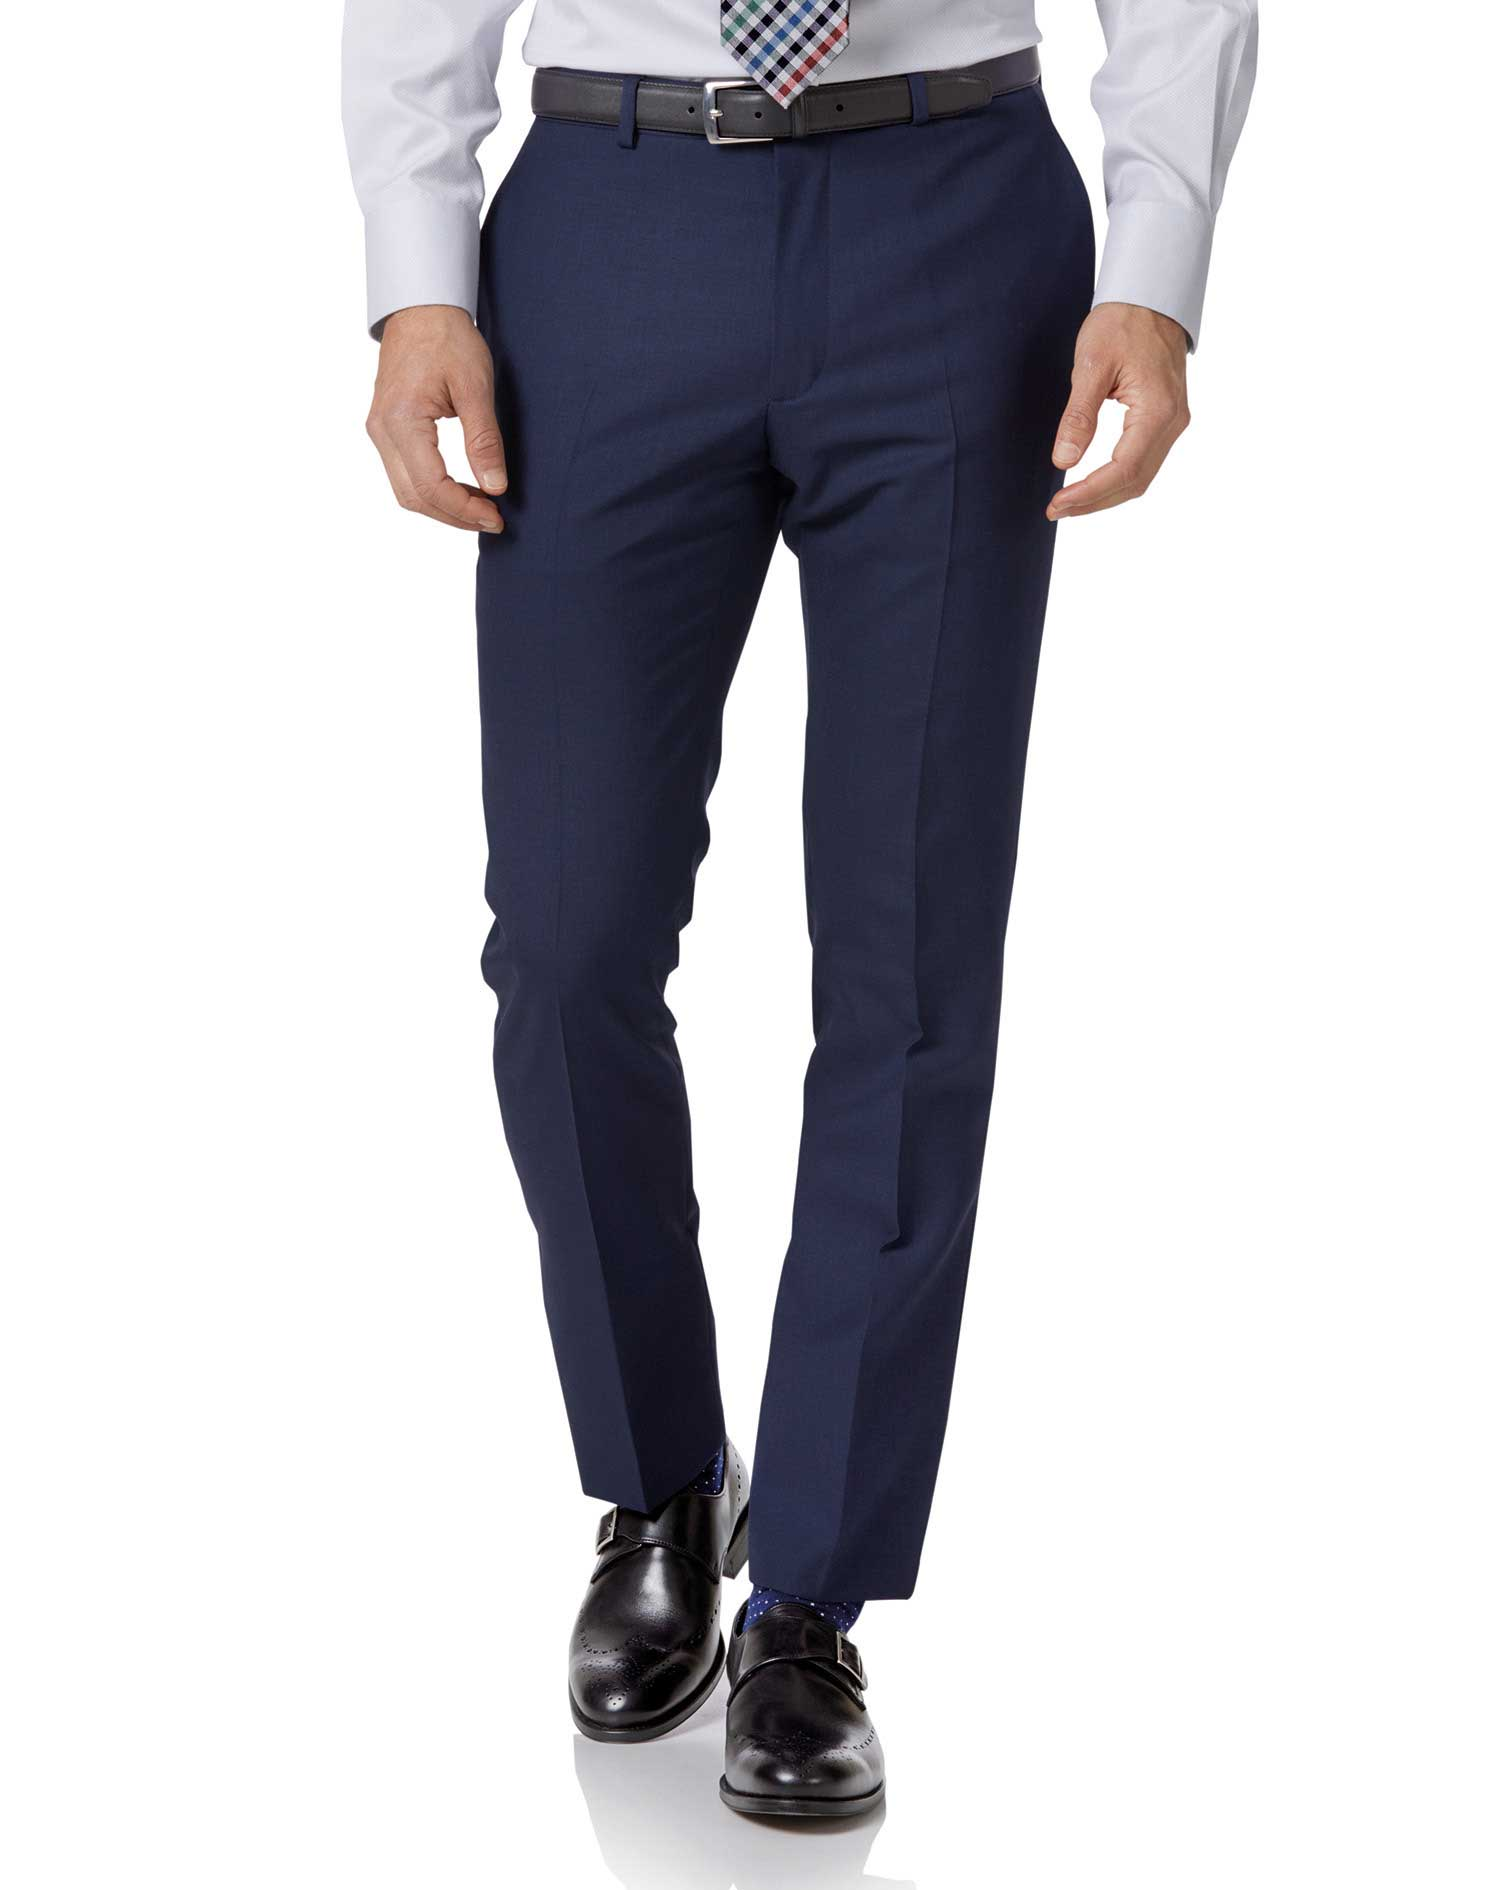 Royal Blue Extra Slim Fit Merino Business Suit Trousers Size W32 L32 by Charles Tyrwhitt